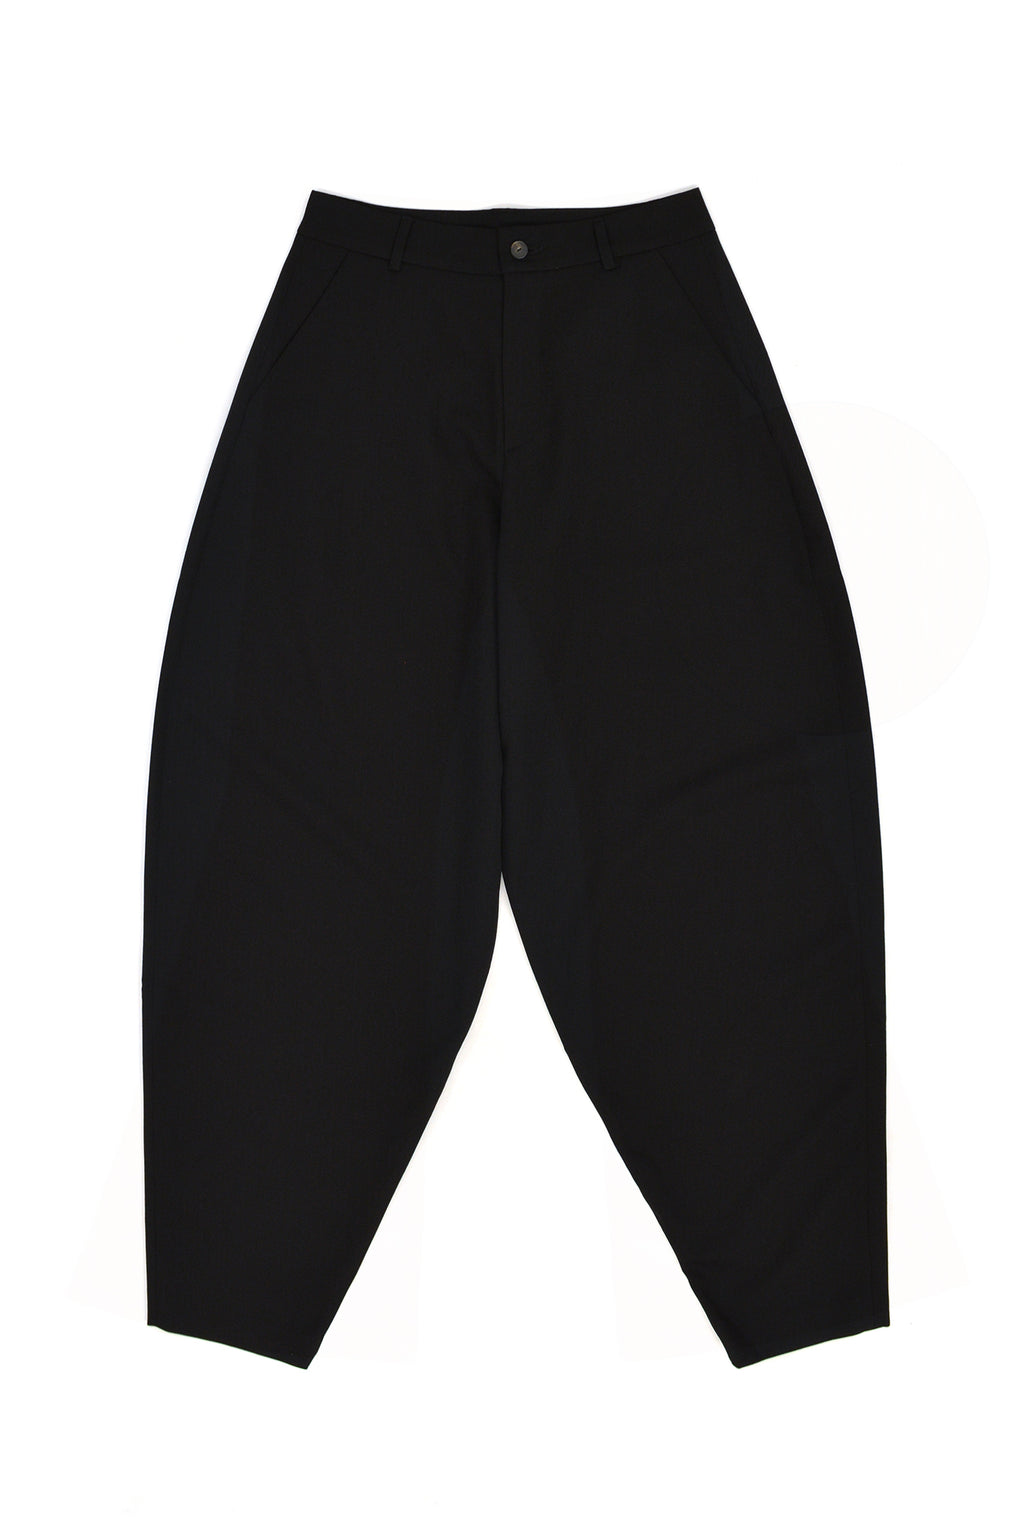 Telfar Balloon Trousers